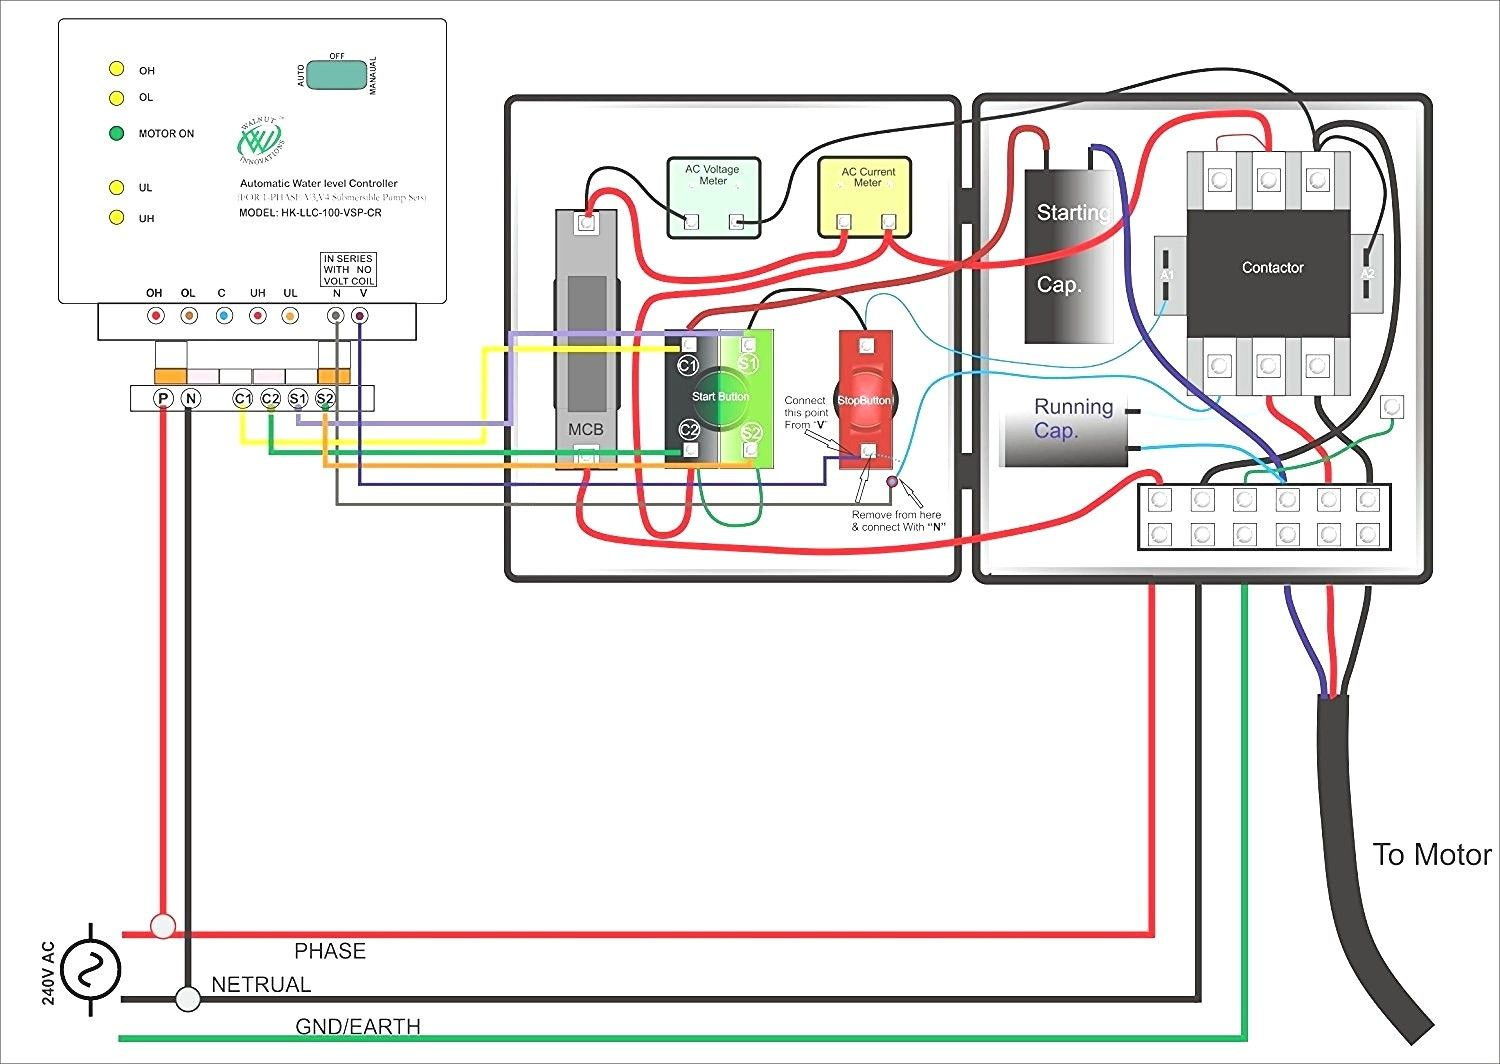 CBF Wiring A Water Pump Diagram | Wiring Resources  Wiring Resources